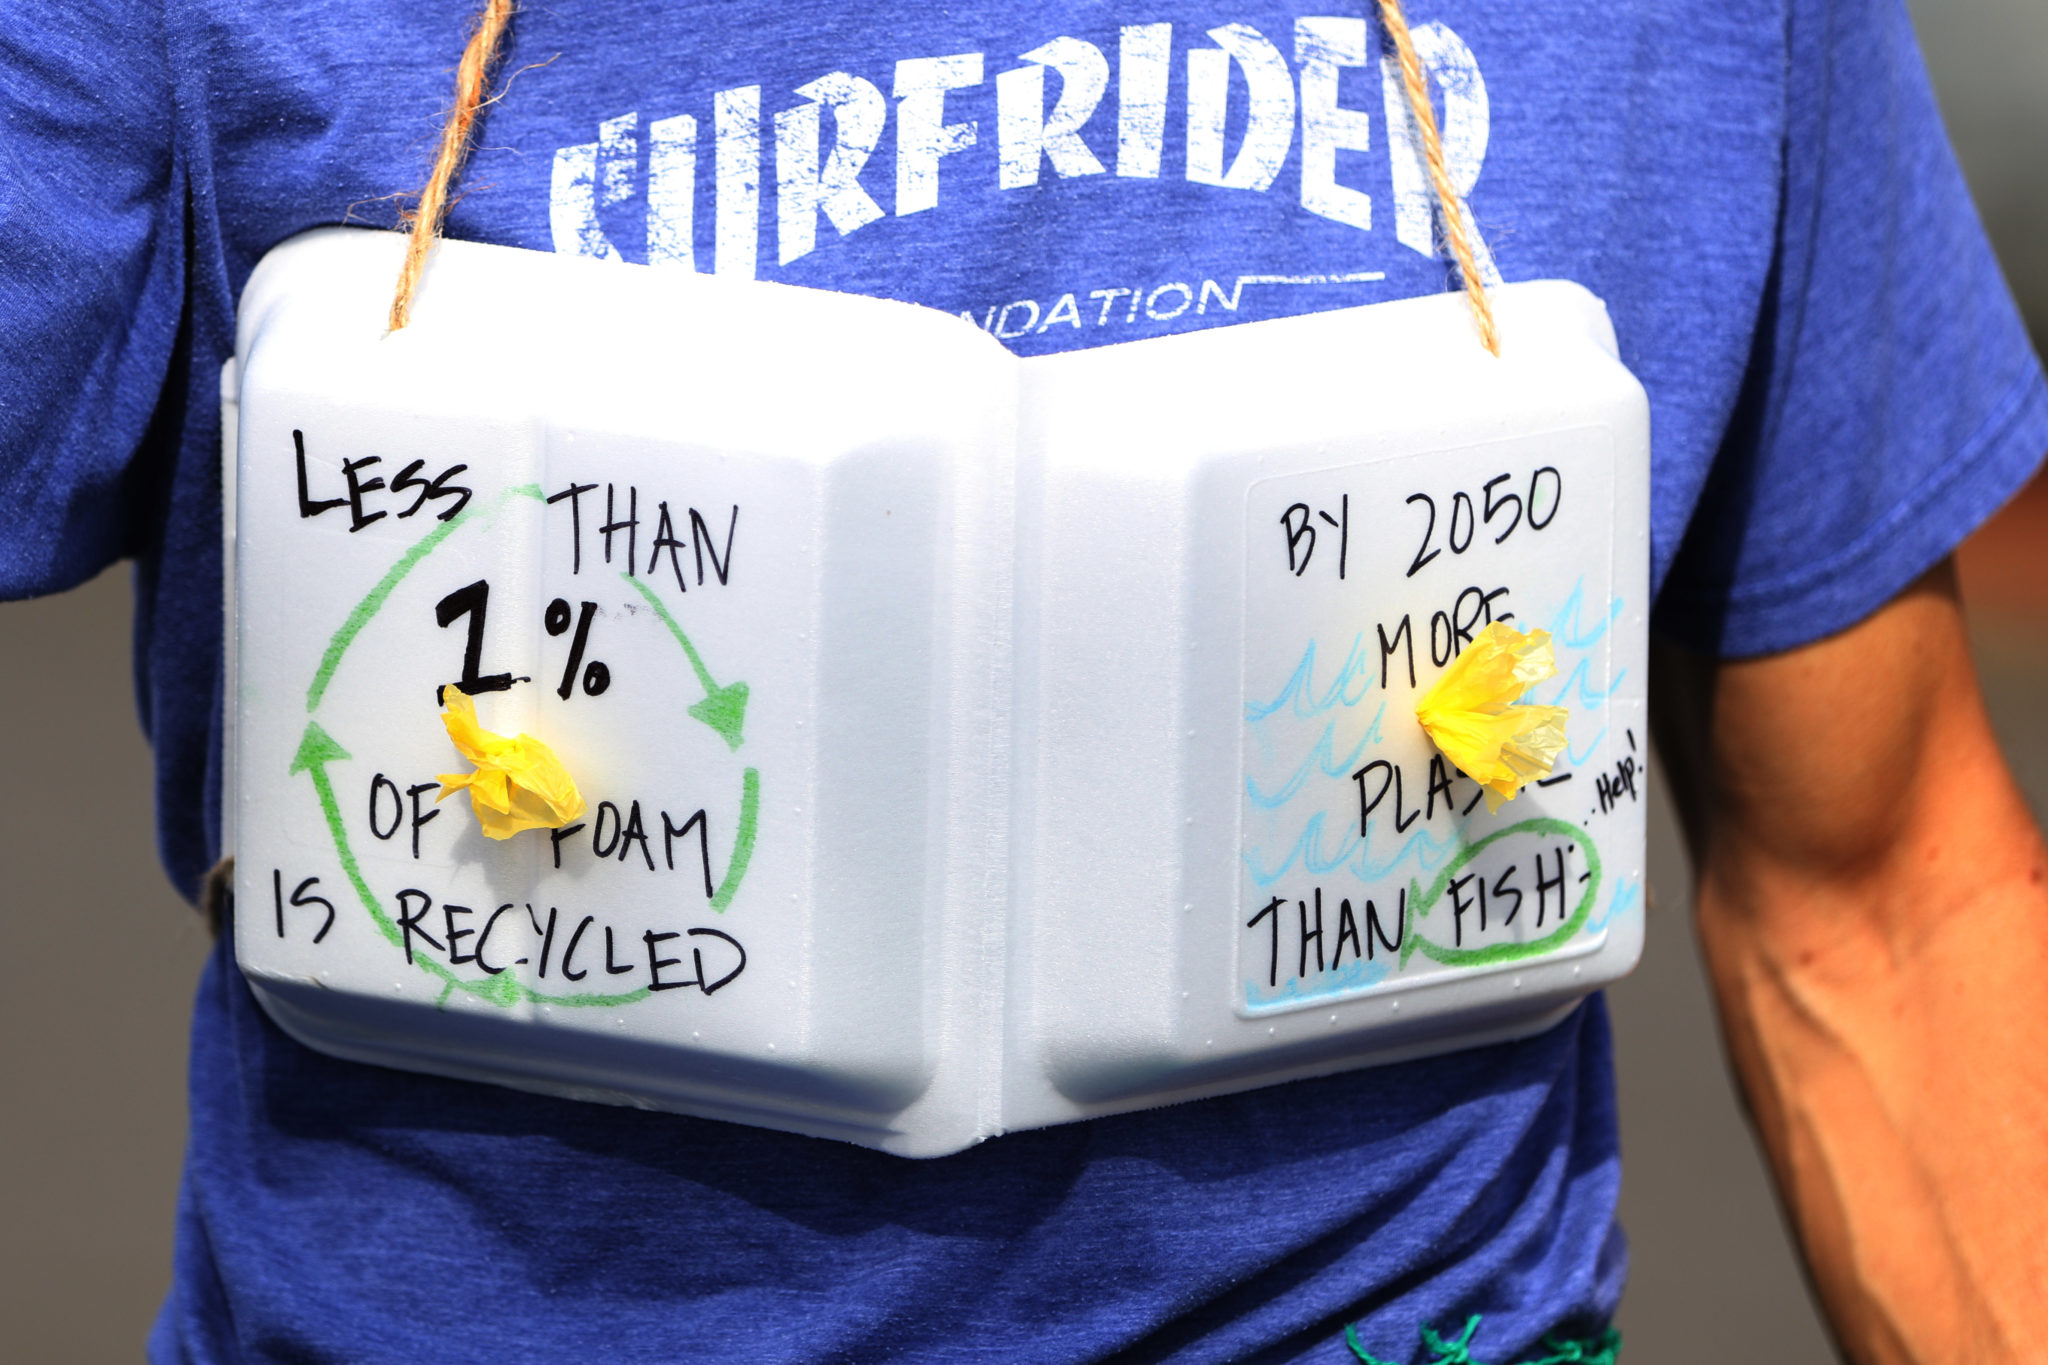 <p>A plastic foam shirt accessory was one of the looks on display during Friday&#8217;s &#8220;Trashion Show,&#8221; organized by Ocean Friendly Restaurants Hawaii, the Surfrider Foundation Oahu Chapter, the Sierra Club Oahu Group, Sustainable Coastlines Hawaii and the Kokua Hawaii Foundation.</p>